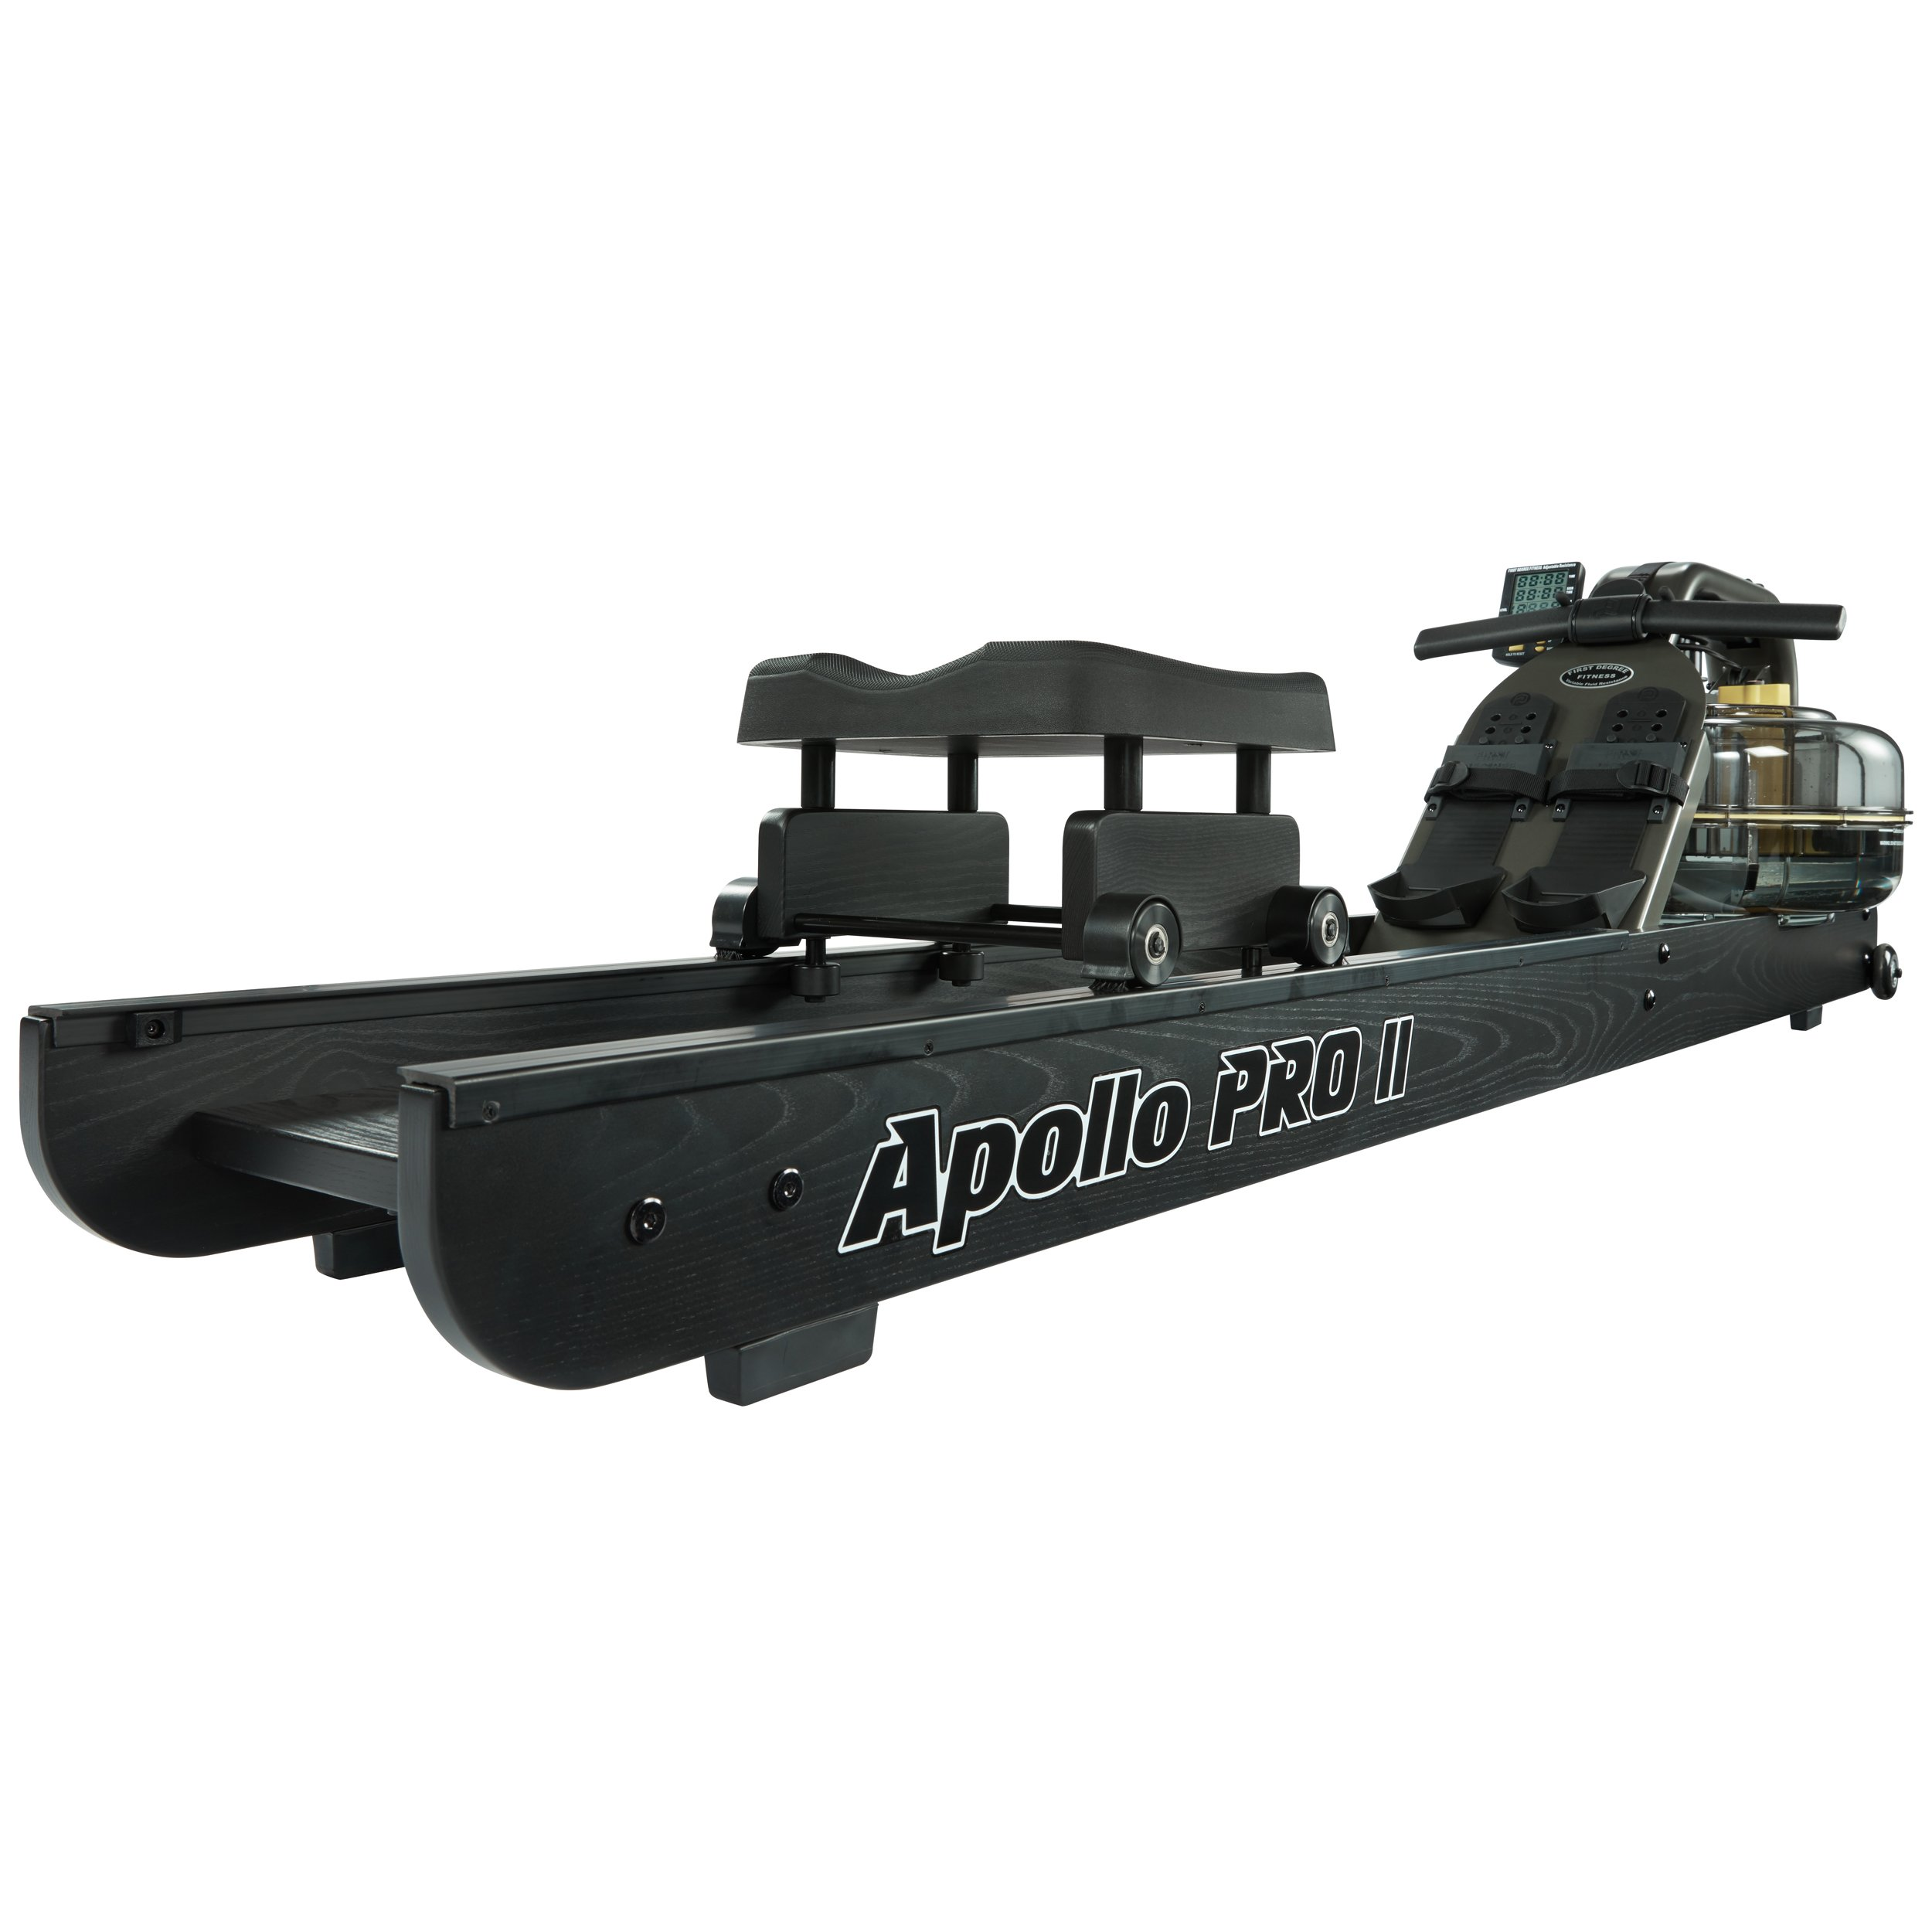 First Degree Fitness Indoor Water Rower with Adjustable Resistance - Apollo Pro II Black Reserve by First Degree (Image #3)